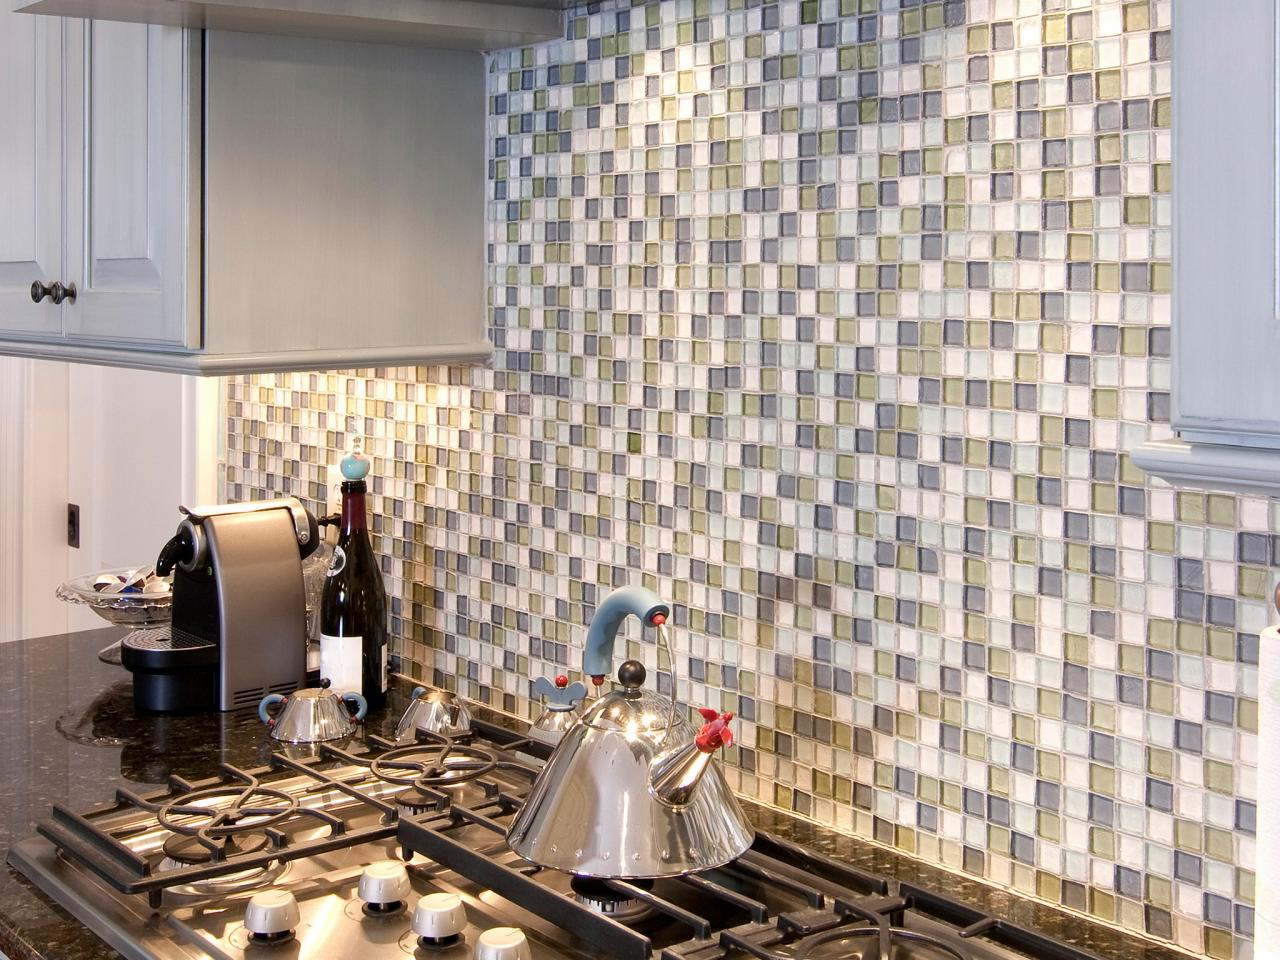 mosaic backsplashes pictures ideas amp tips from hgtv hgtv mosaic tile kitchen backsplash hgtv